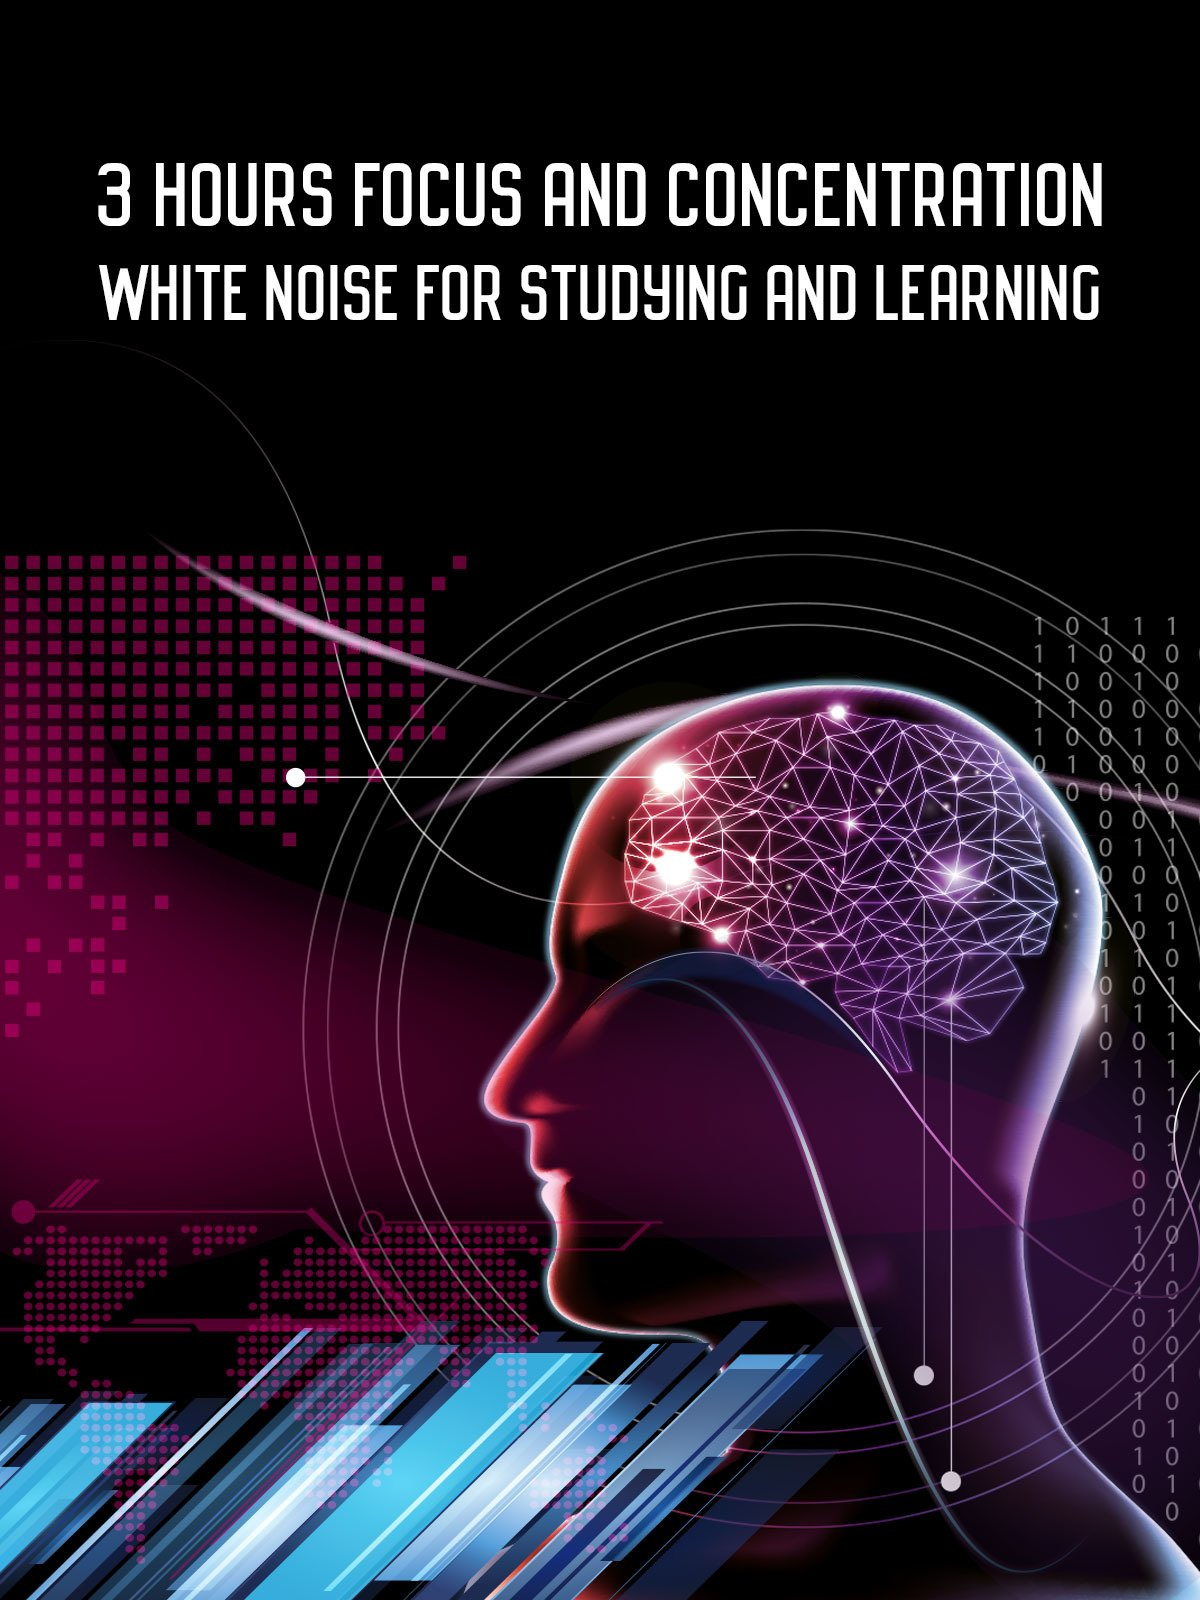 3 Hours Focus and Concentration White Noise for Studying and Learning